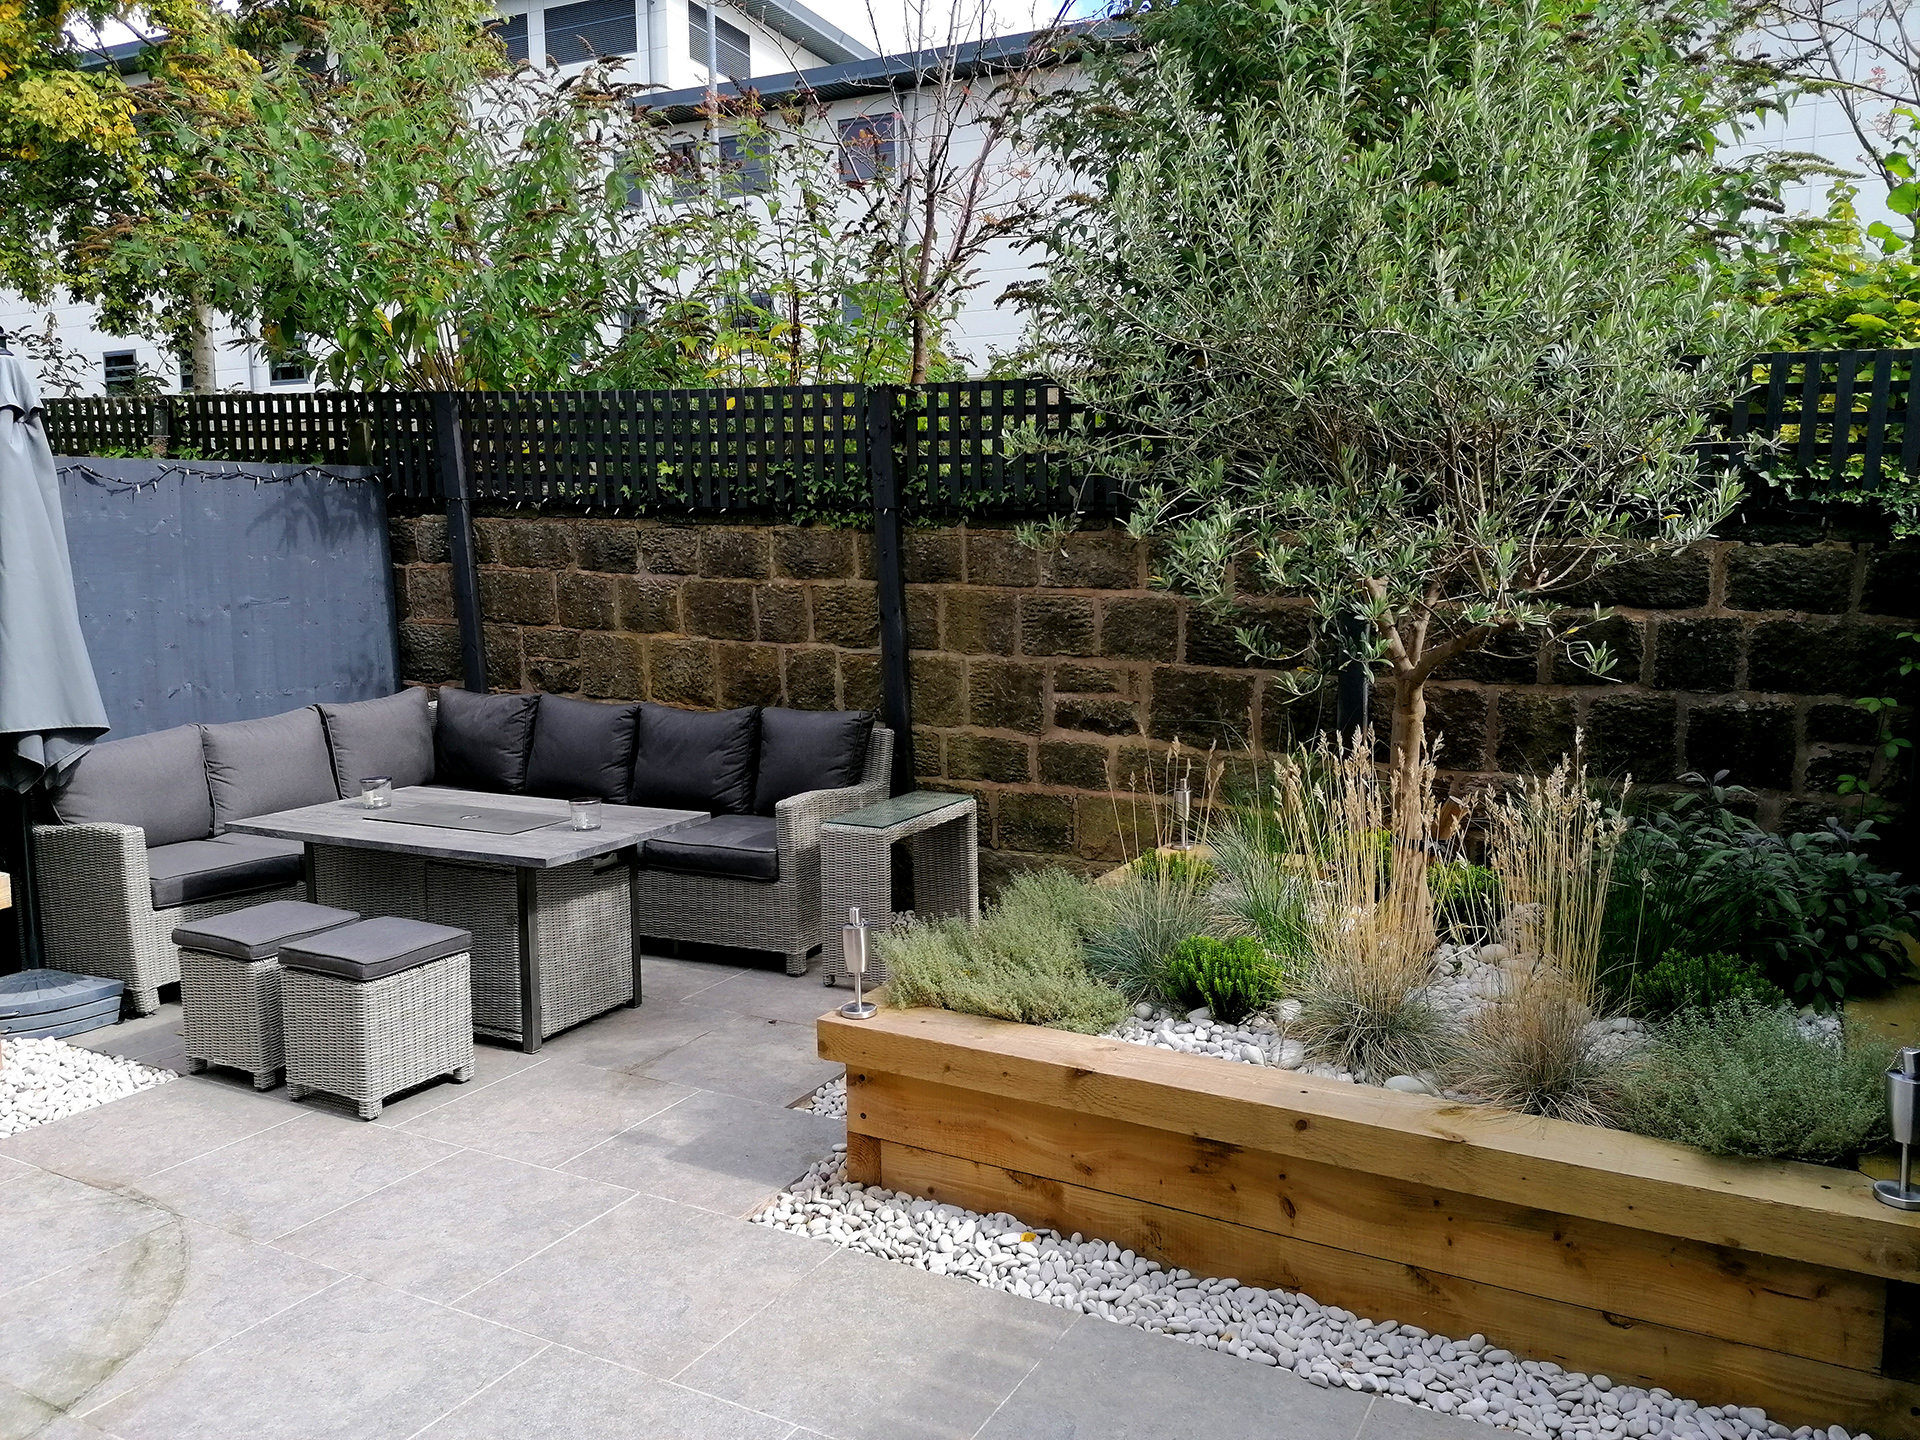 Garden design Otley Yorkshire Gardens raised beds porcelain paving